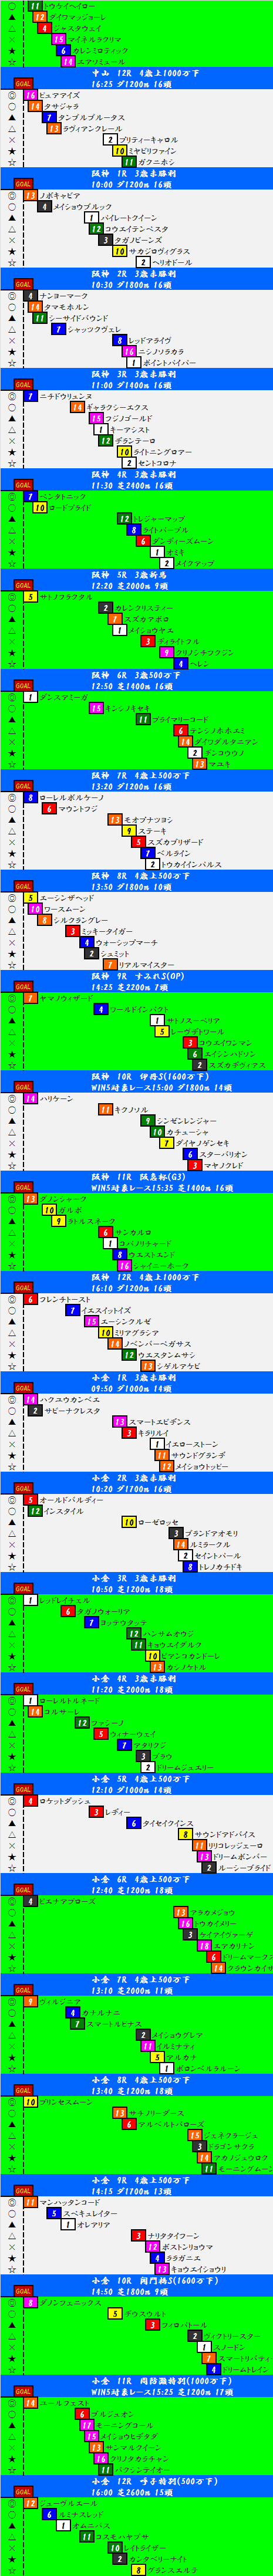 201403022.png